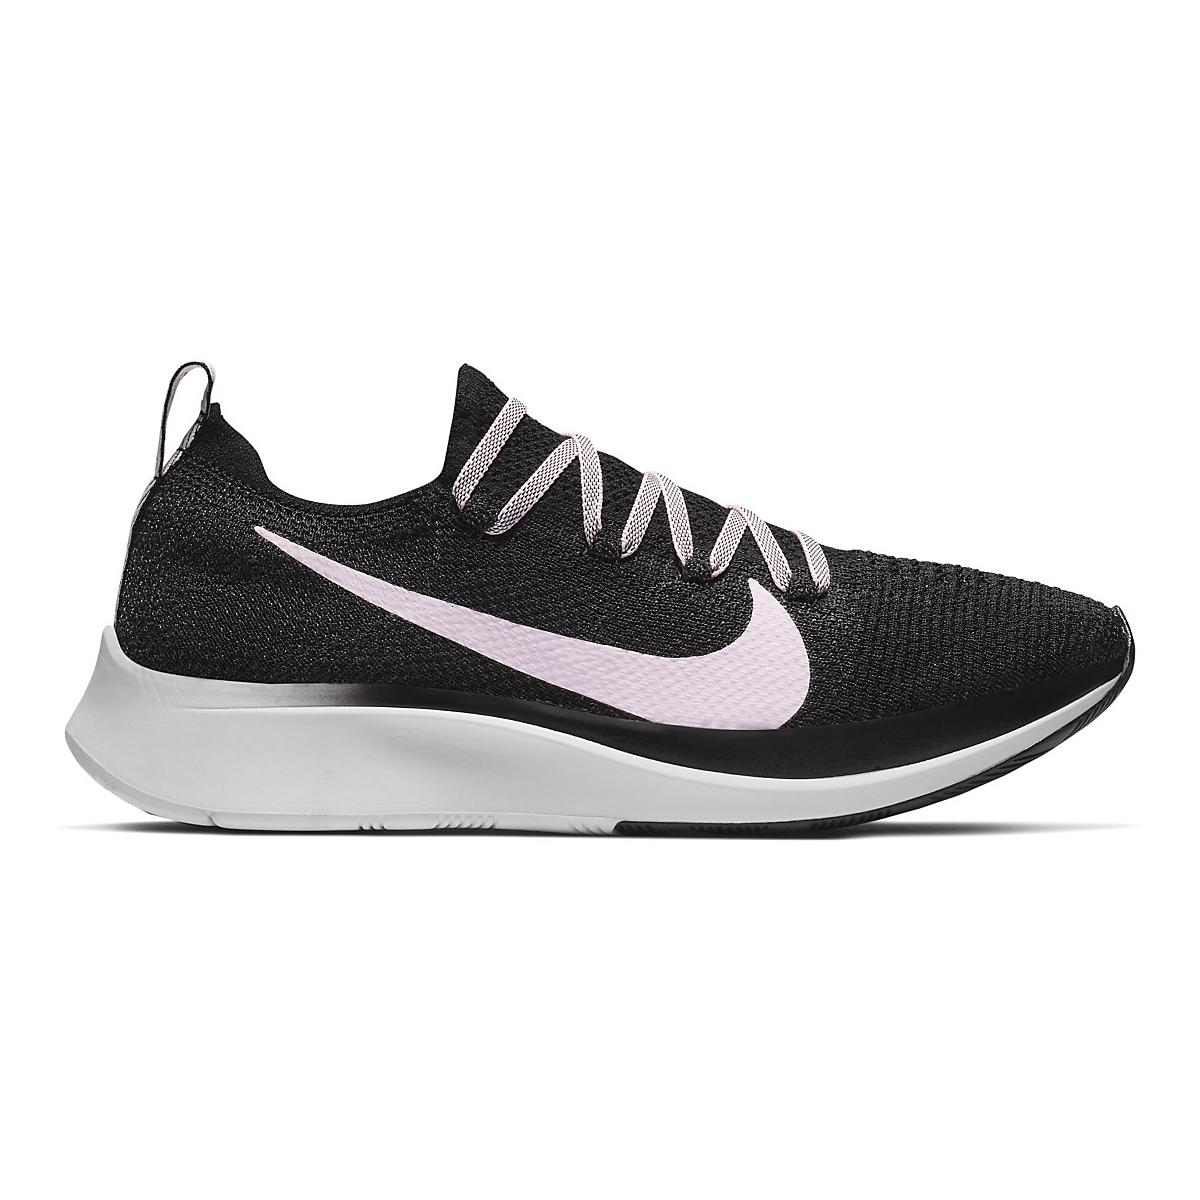 9db1fa6107 Womens Nike Zoom Fly Flyknit Running Shoe at Road Runner Sports